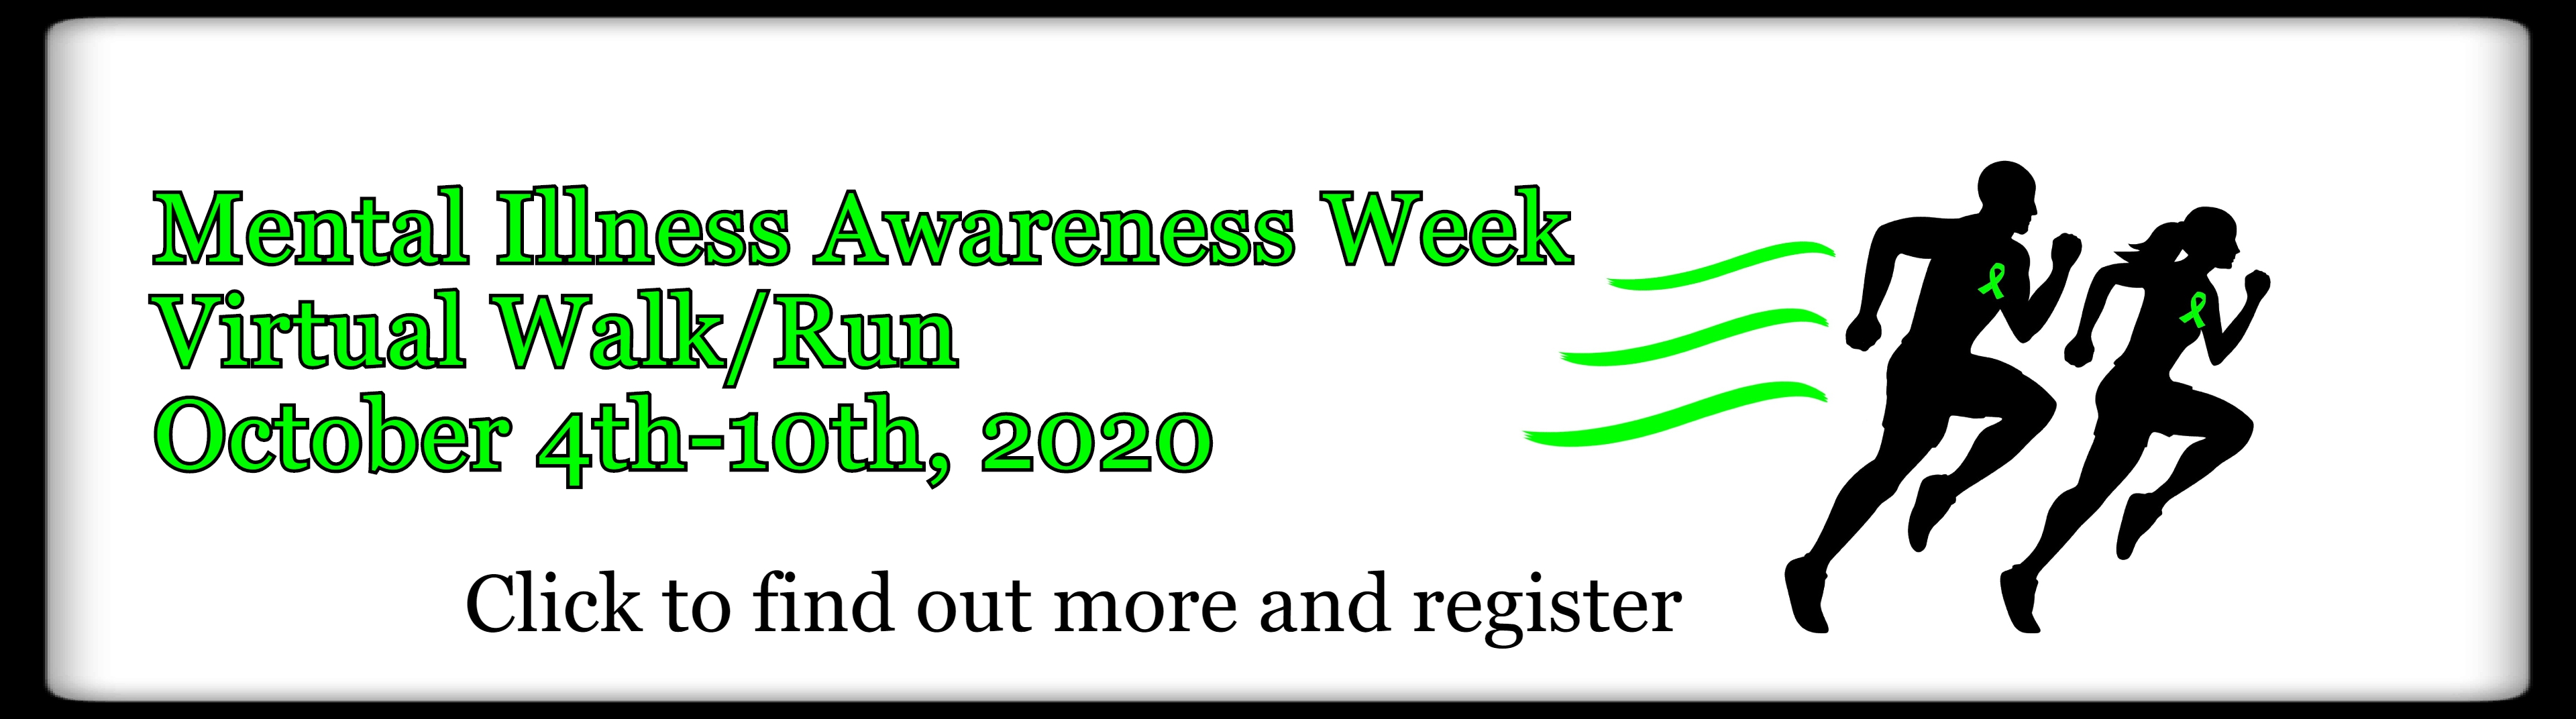 2020 Virtual Walk/Run Event Banner